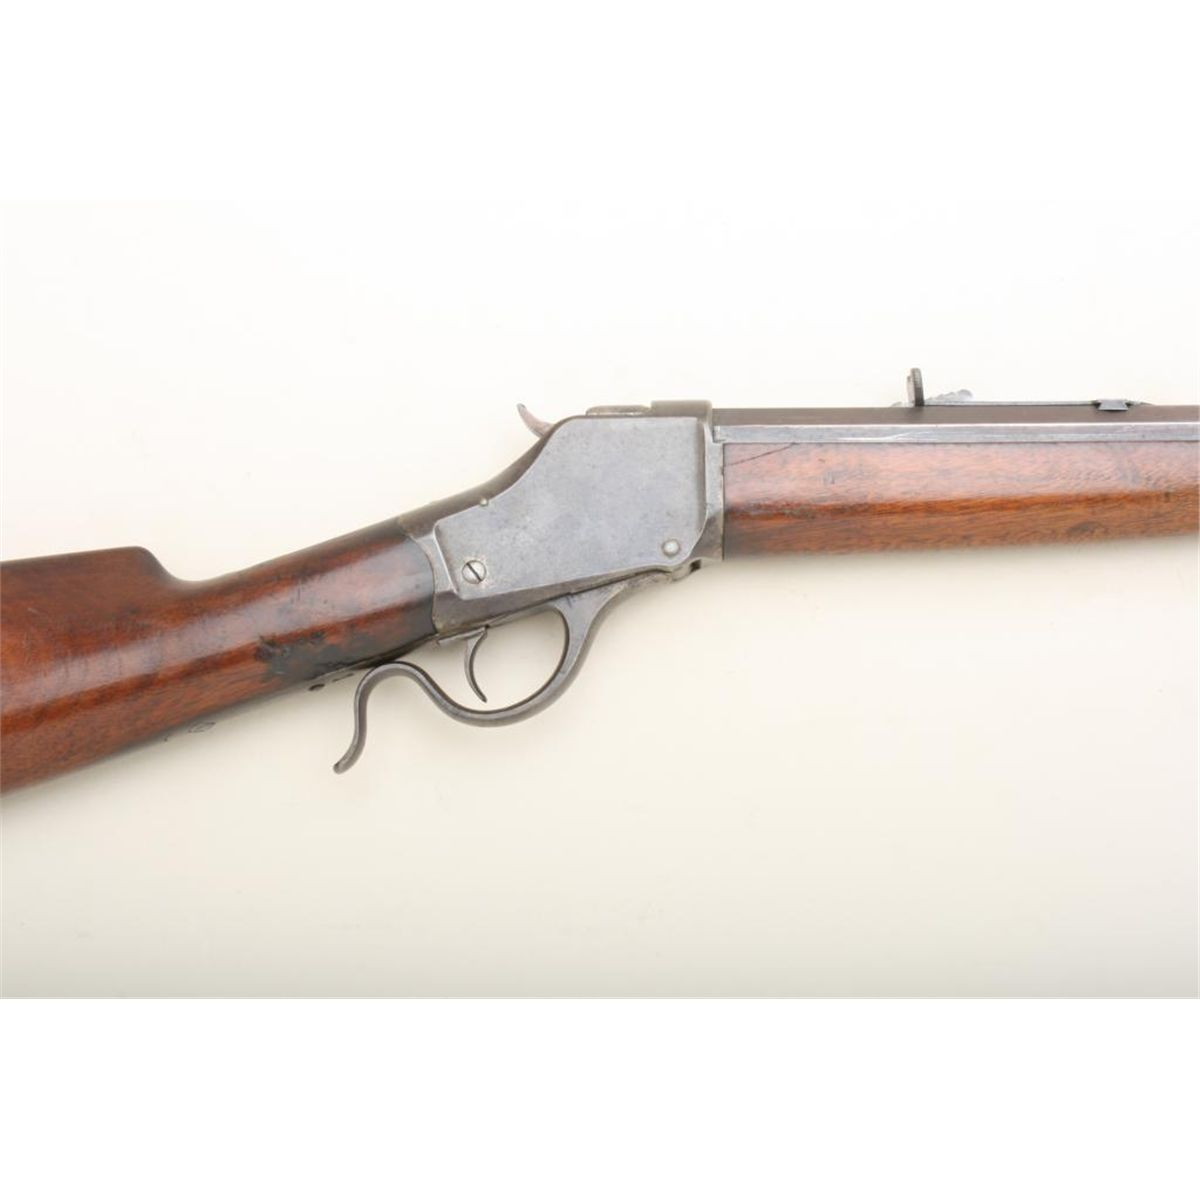 winchester singles over 50 Find winchester 69a for sale at gunbrokercom, the world's largest gun auction site you can buy winchester 69a with confidence from thousands of.